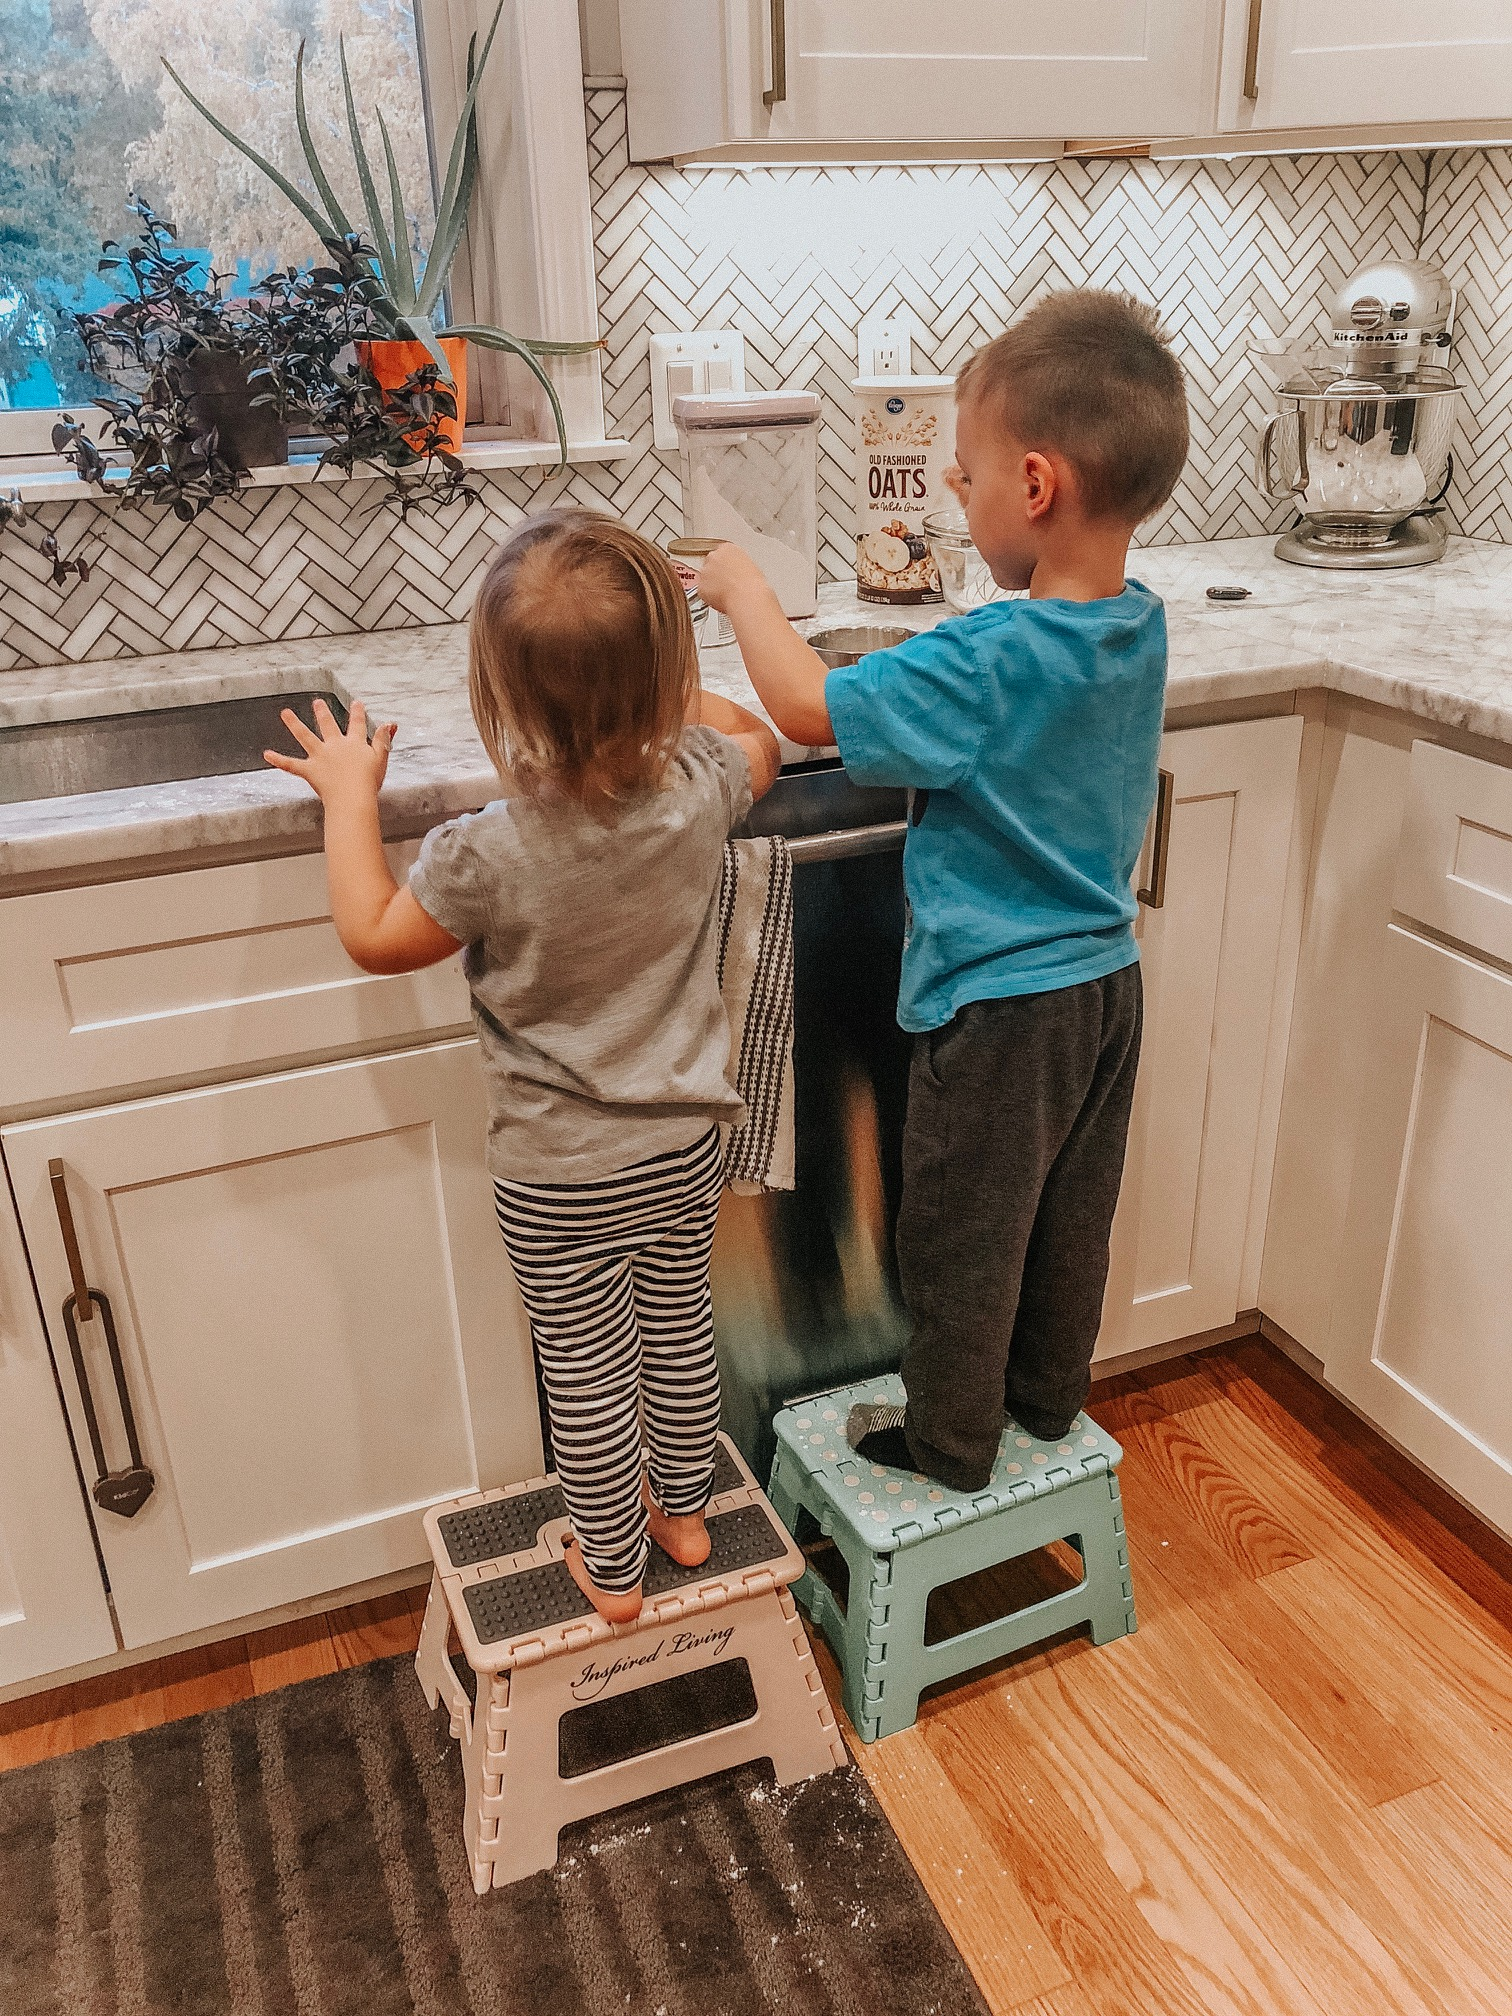 Getting Your Kids Cooking | Daily Splendor Life and Style Blog | family, cooking, kitchen, kids, mixing #familytime #familycooking #kidscooking #baking